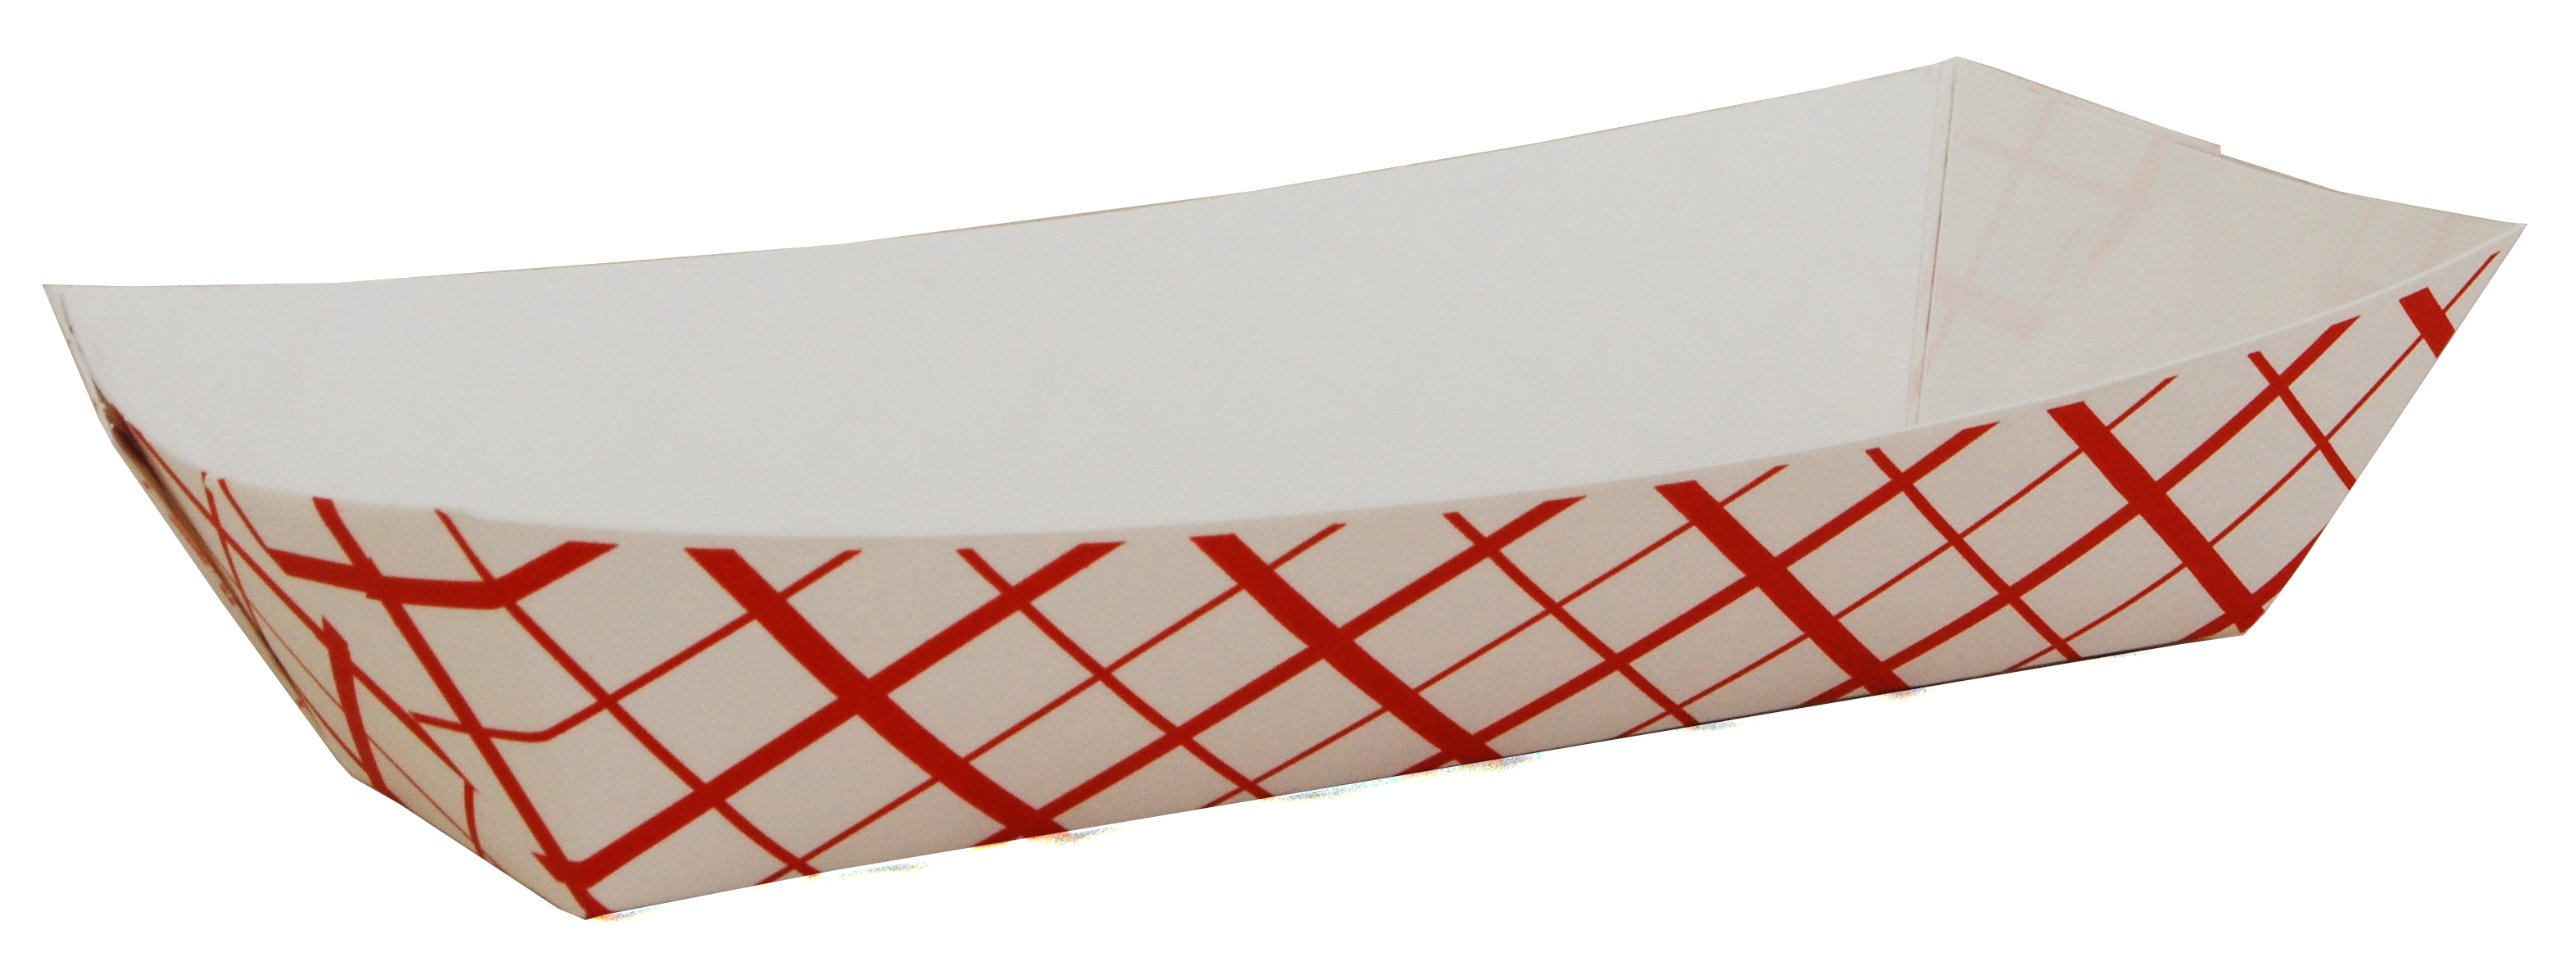 Southern Champion Tray 07091 Paperboard Red Check Hot Dog Tray, 7'' Length x 2-3/4'' Width x 1-1/2'' Height (Case of 1000) by Southern Champion Tray